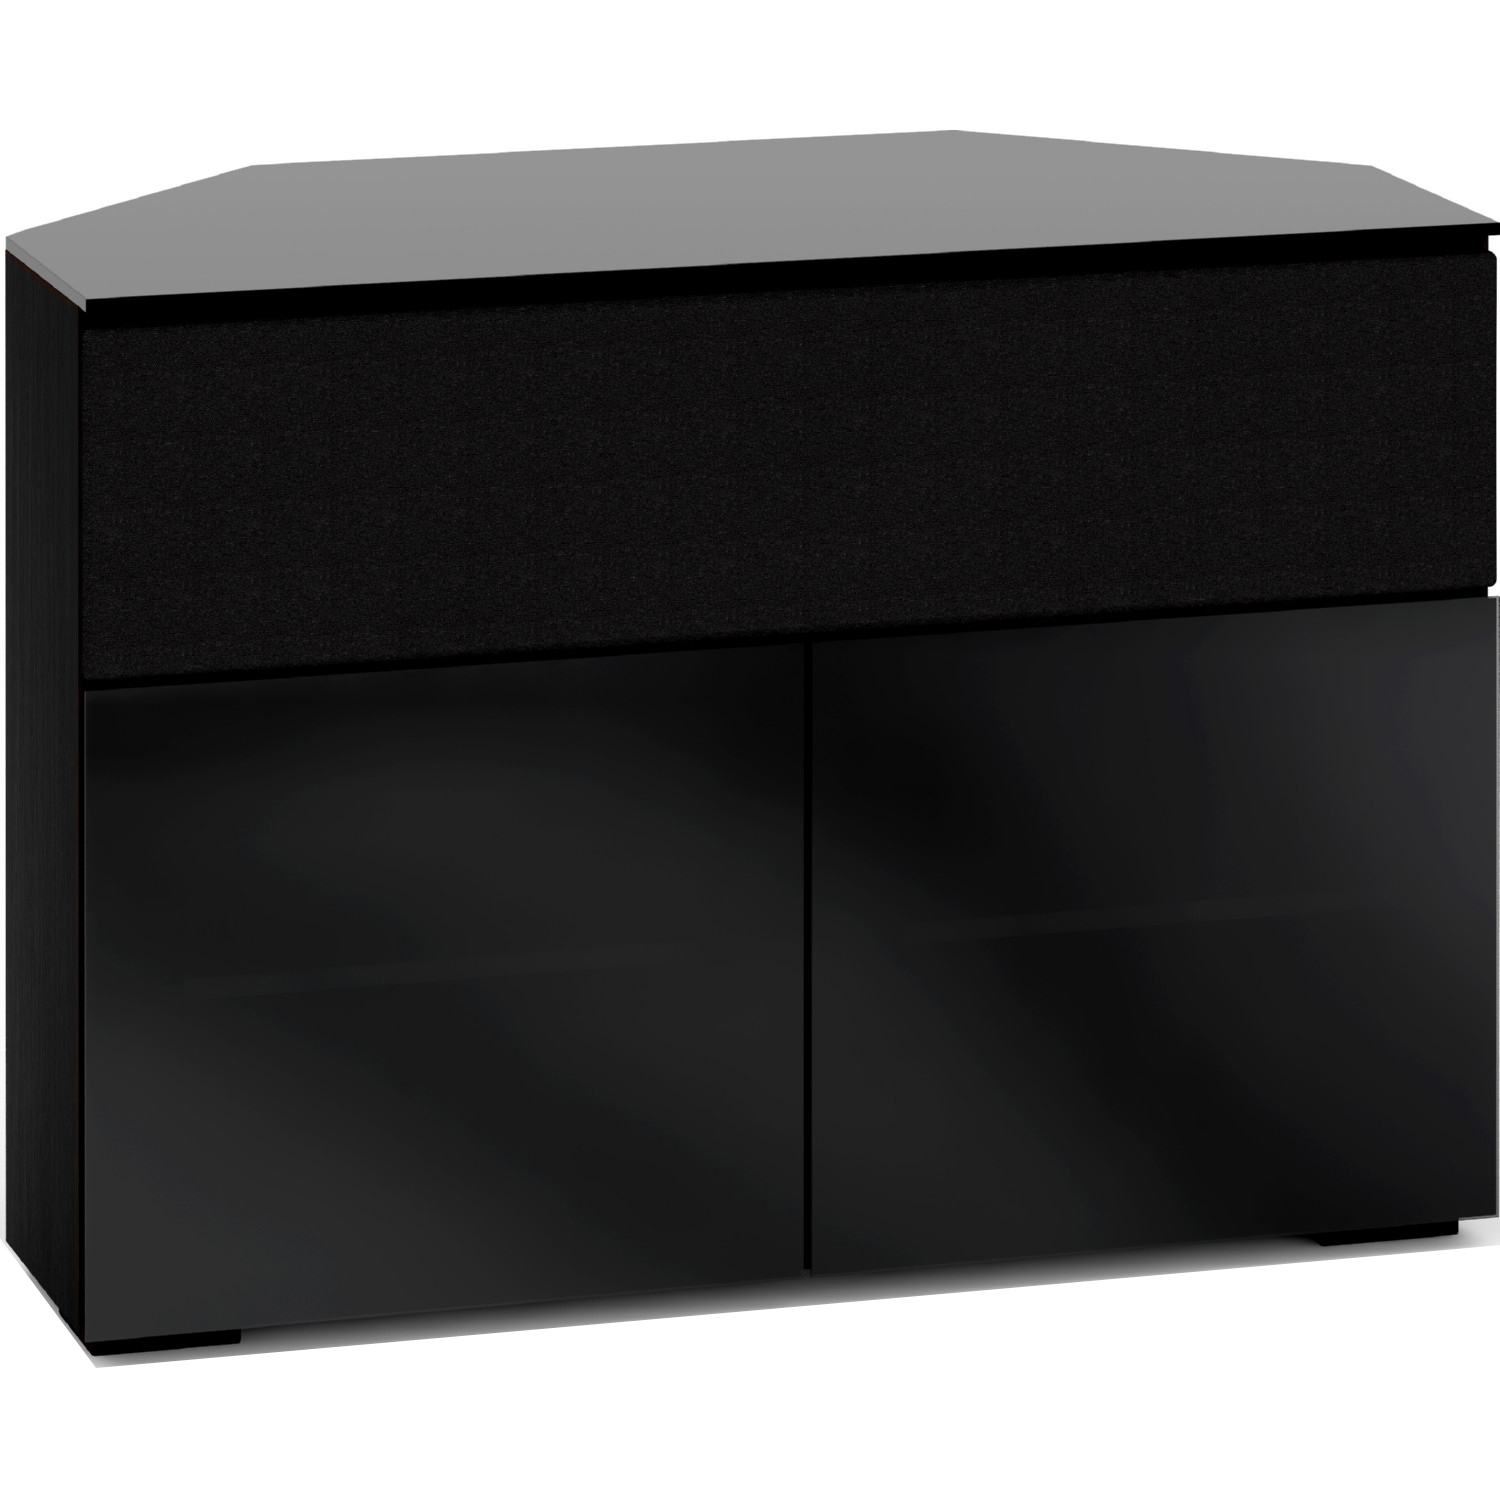 Picture of: Salamander Designs C Os329cr Bg Oslo 329cr 44 Extra Tall Corner Tv Stand Cabinet For Center Speaker In Black Oak W Smoked Black Gl